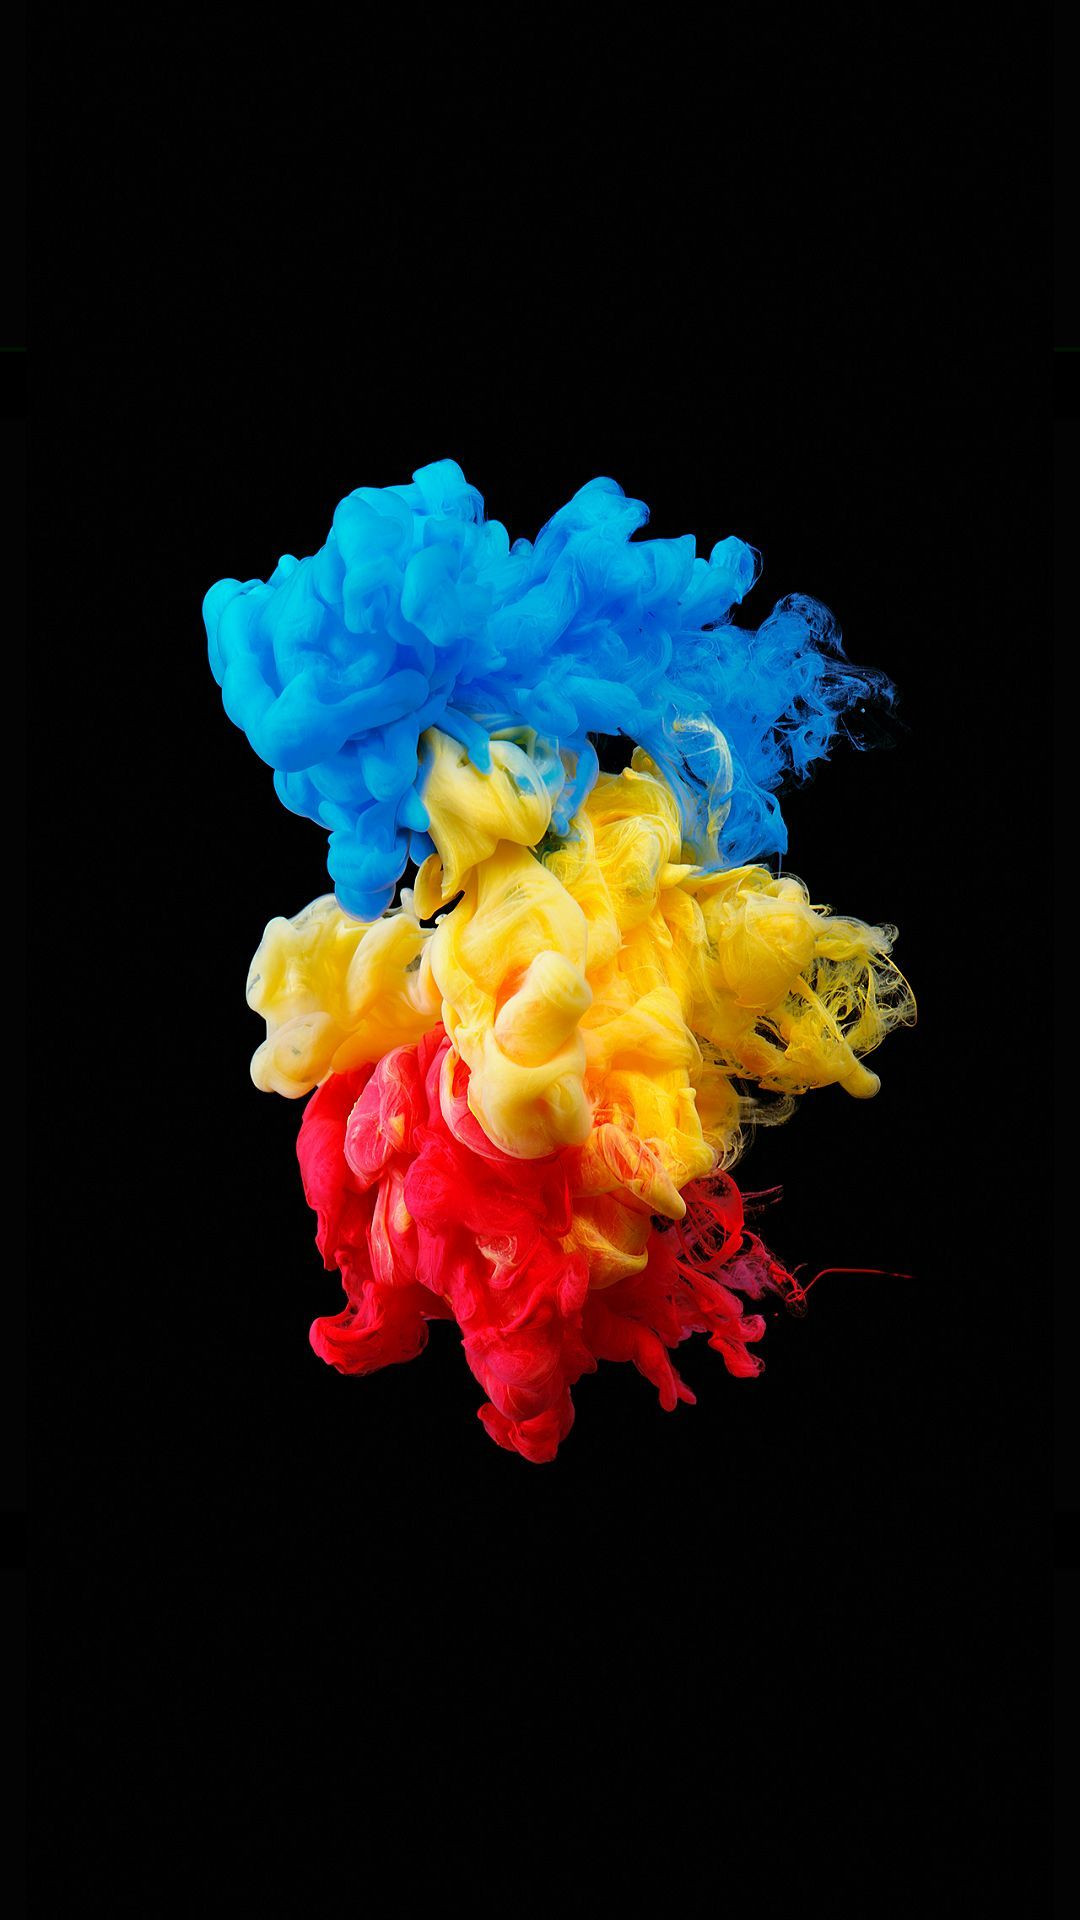 Image Result For Huawei P8 Hd Wallpaper Colourful Wallpaper Iphone Color Wallpaper Iphone Live Wallpaper Iphone 7